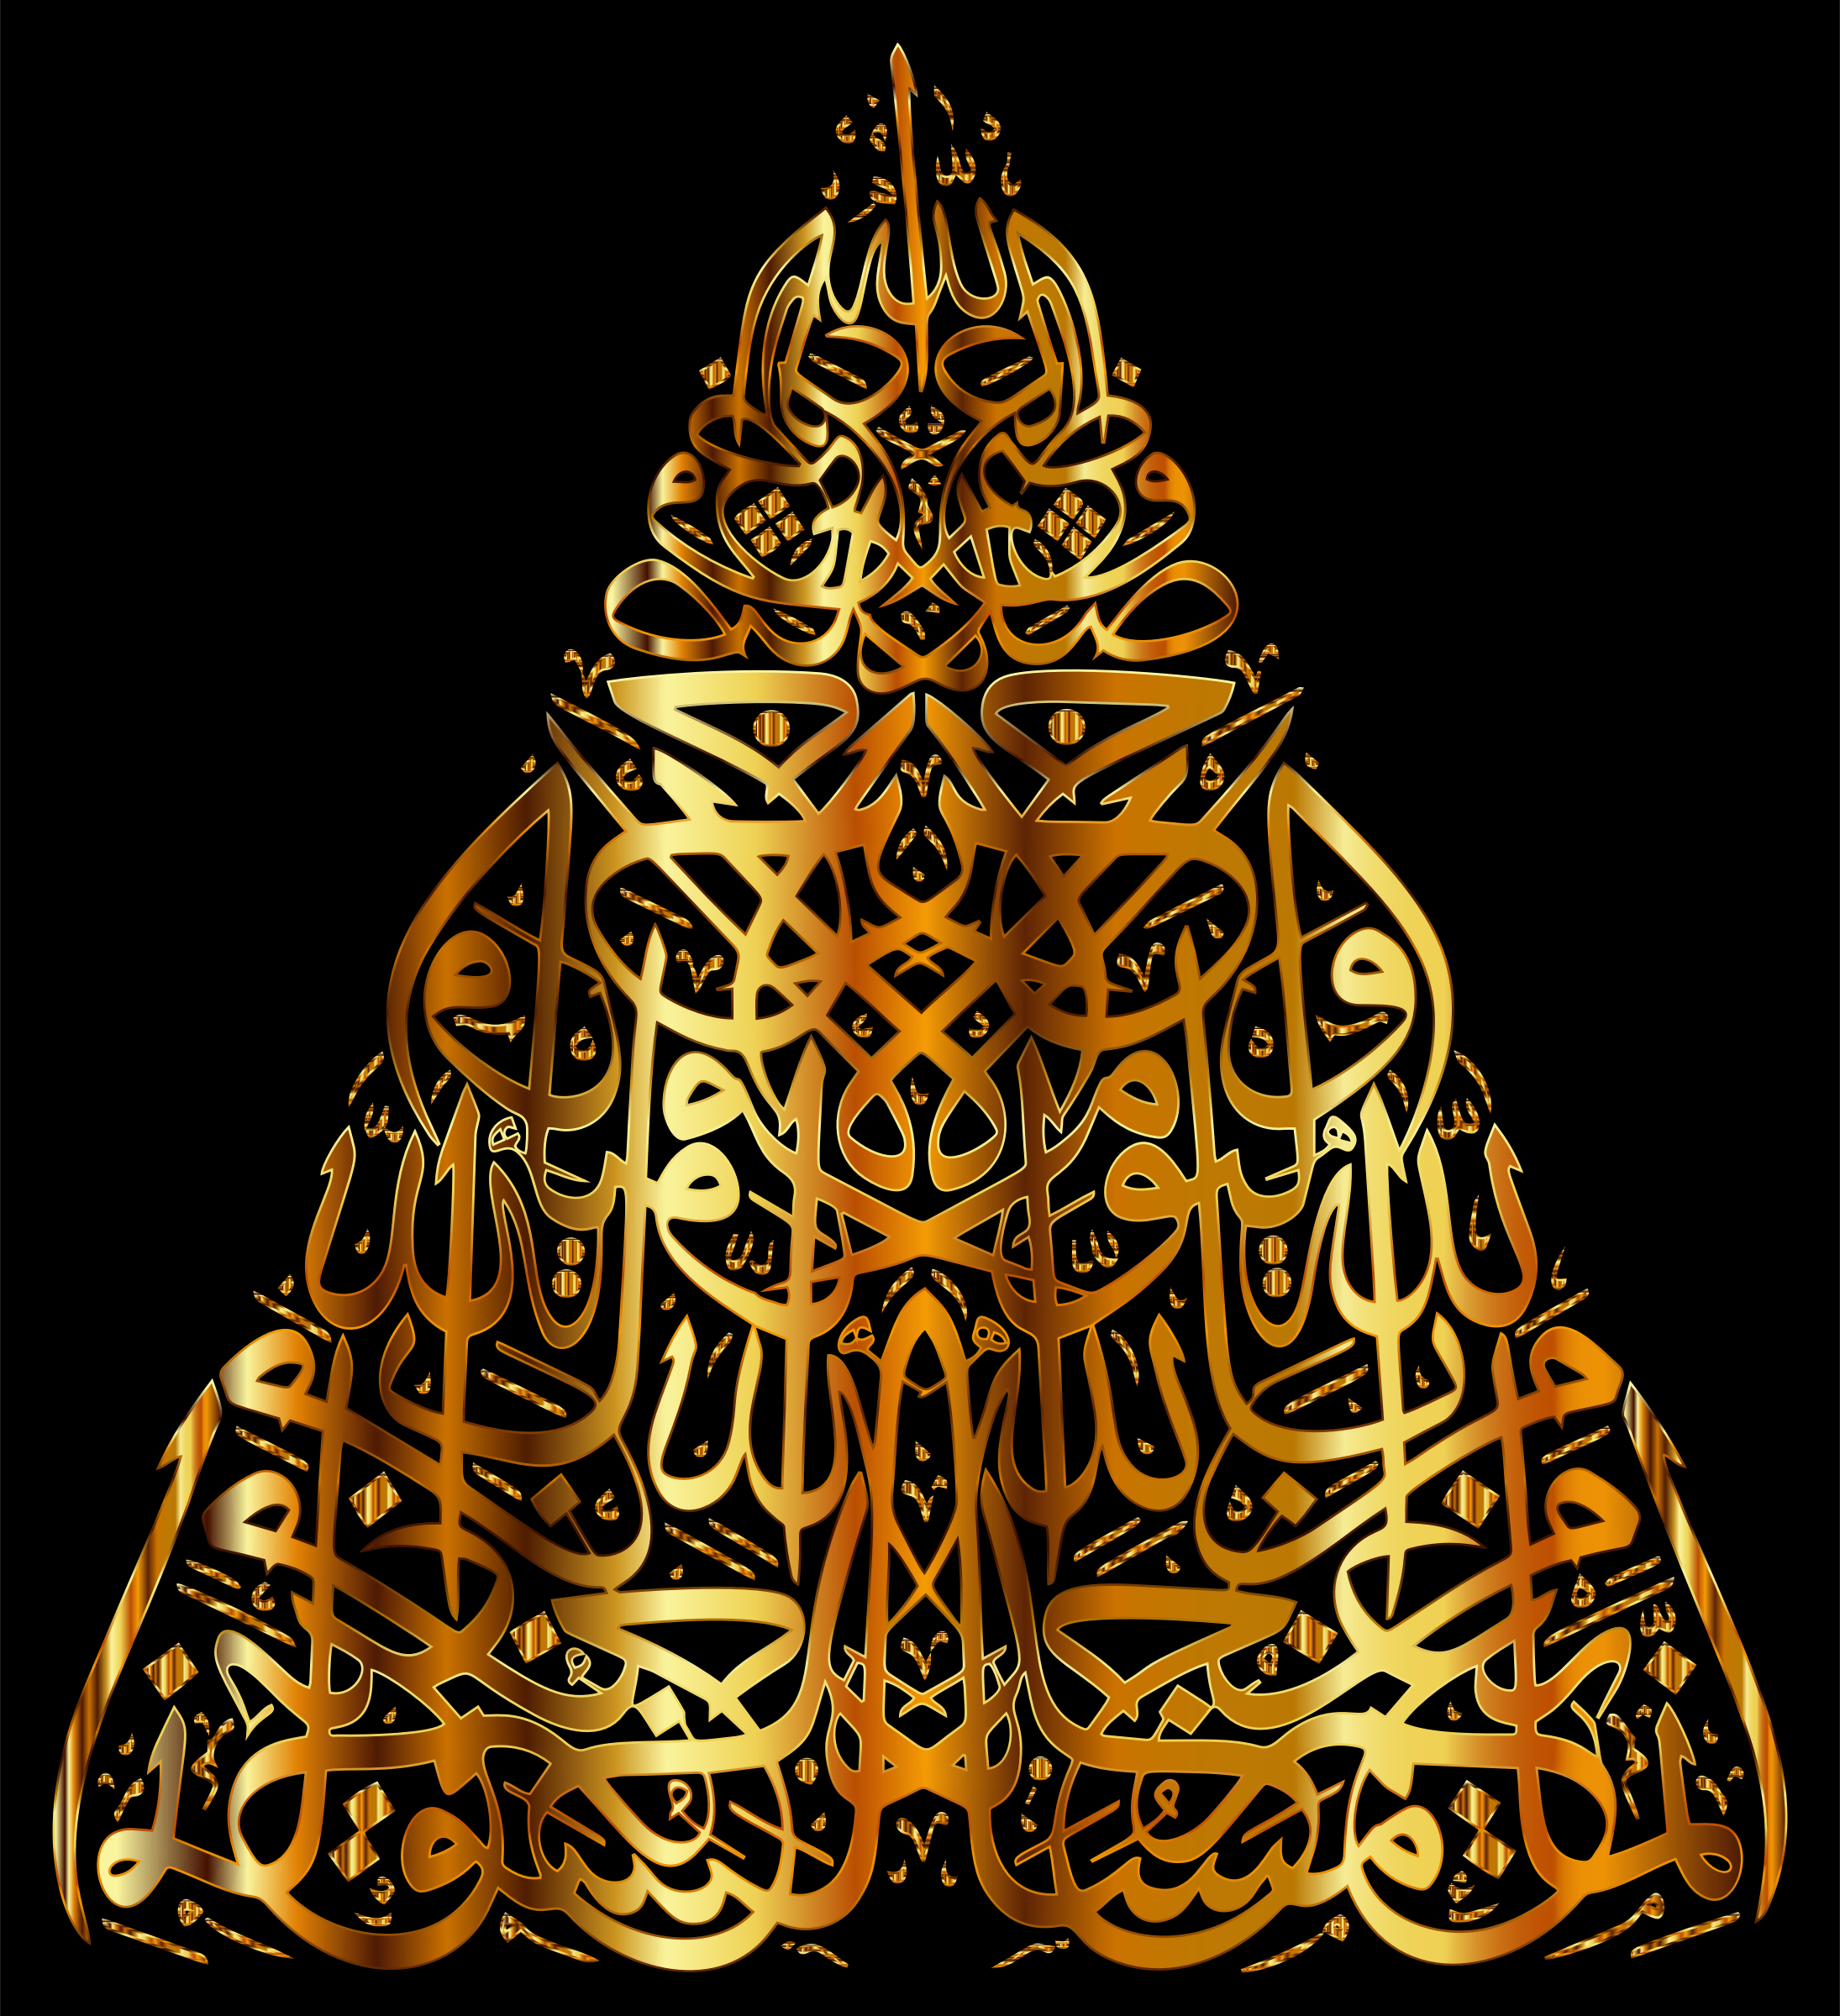 Gold Al-Tawbah 9-18 Calligraphy by GDJ